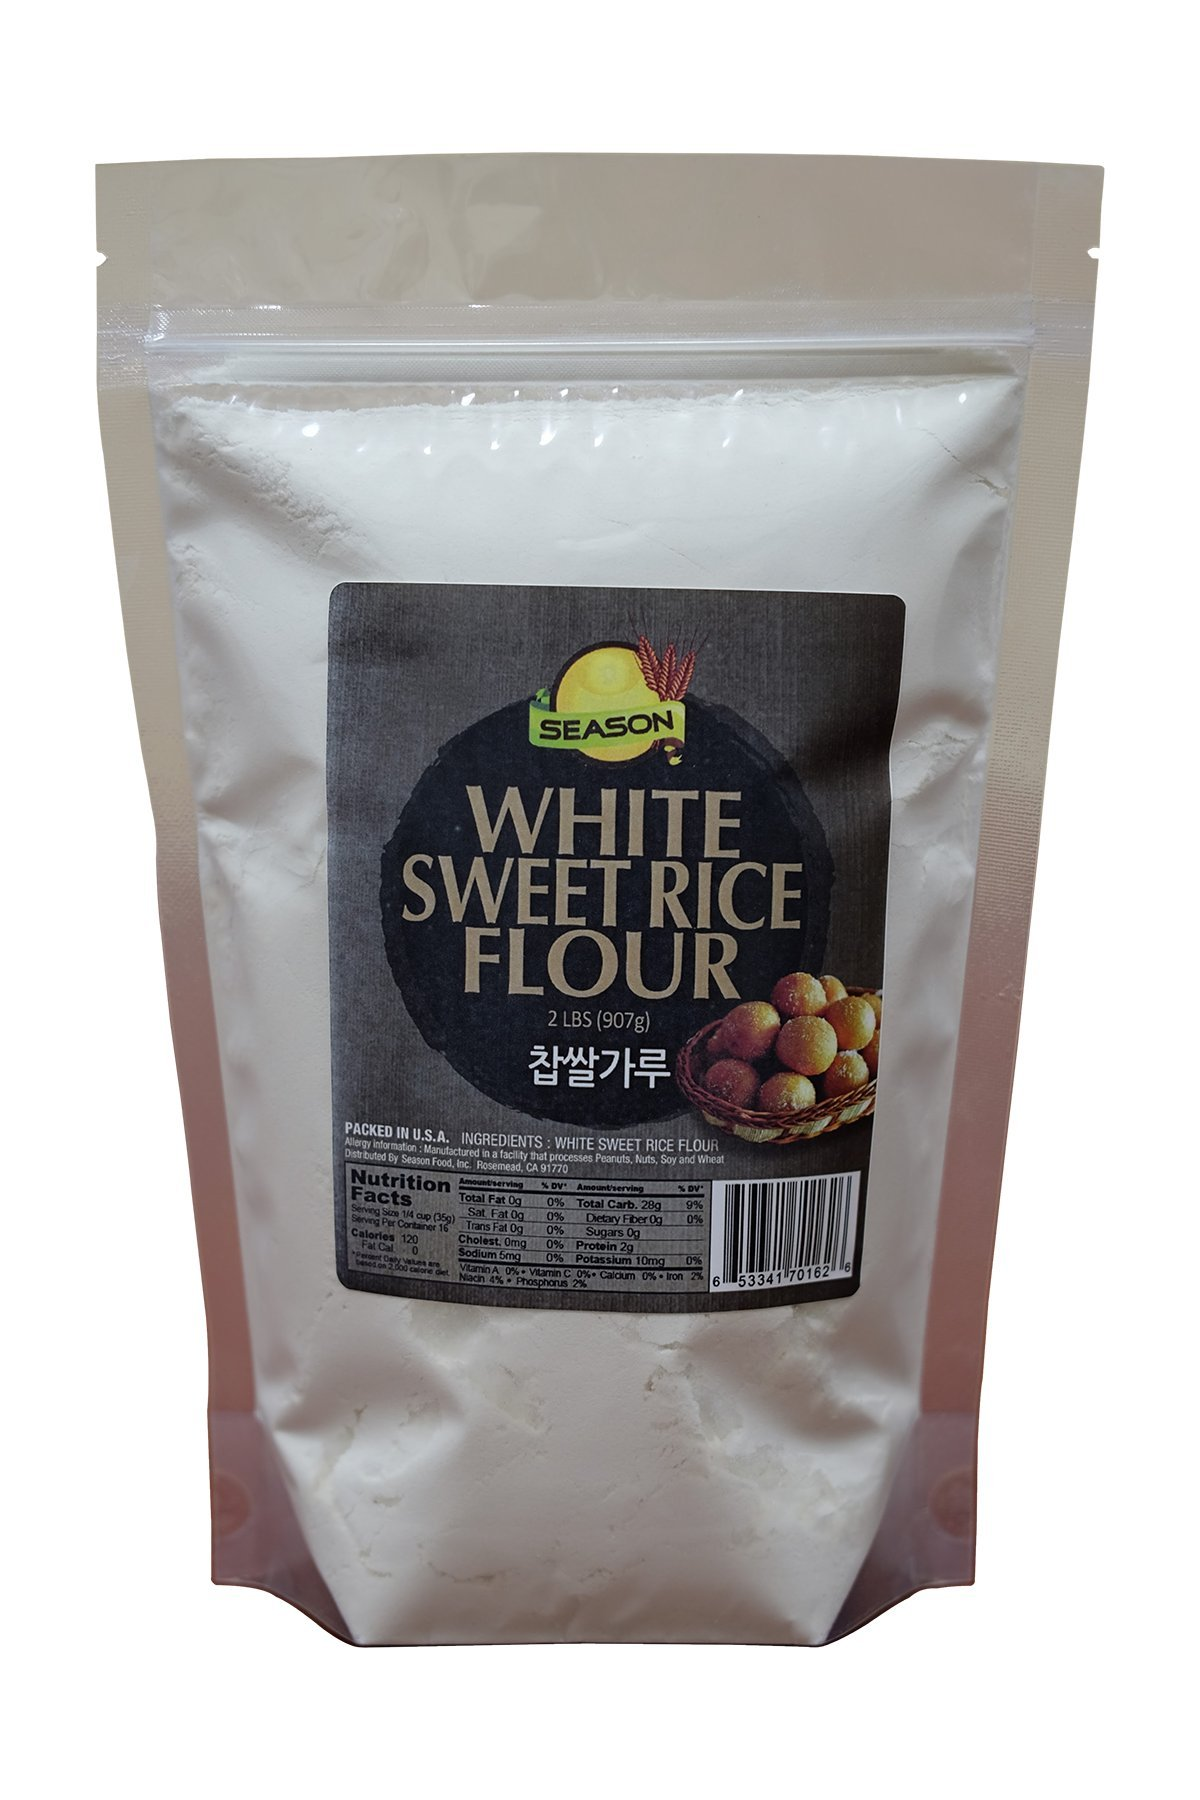 Season White Sweet Rice Flour, 2-Pound